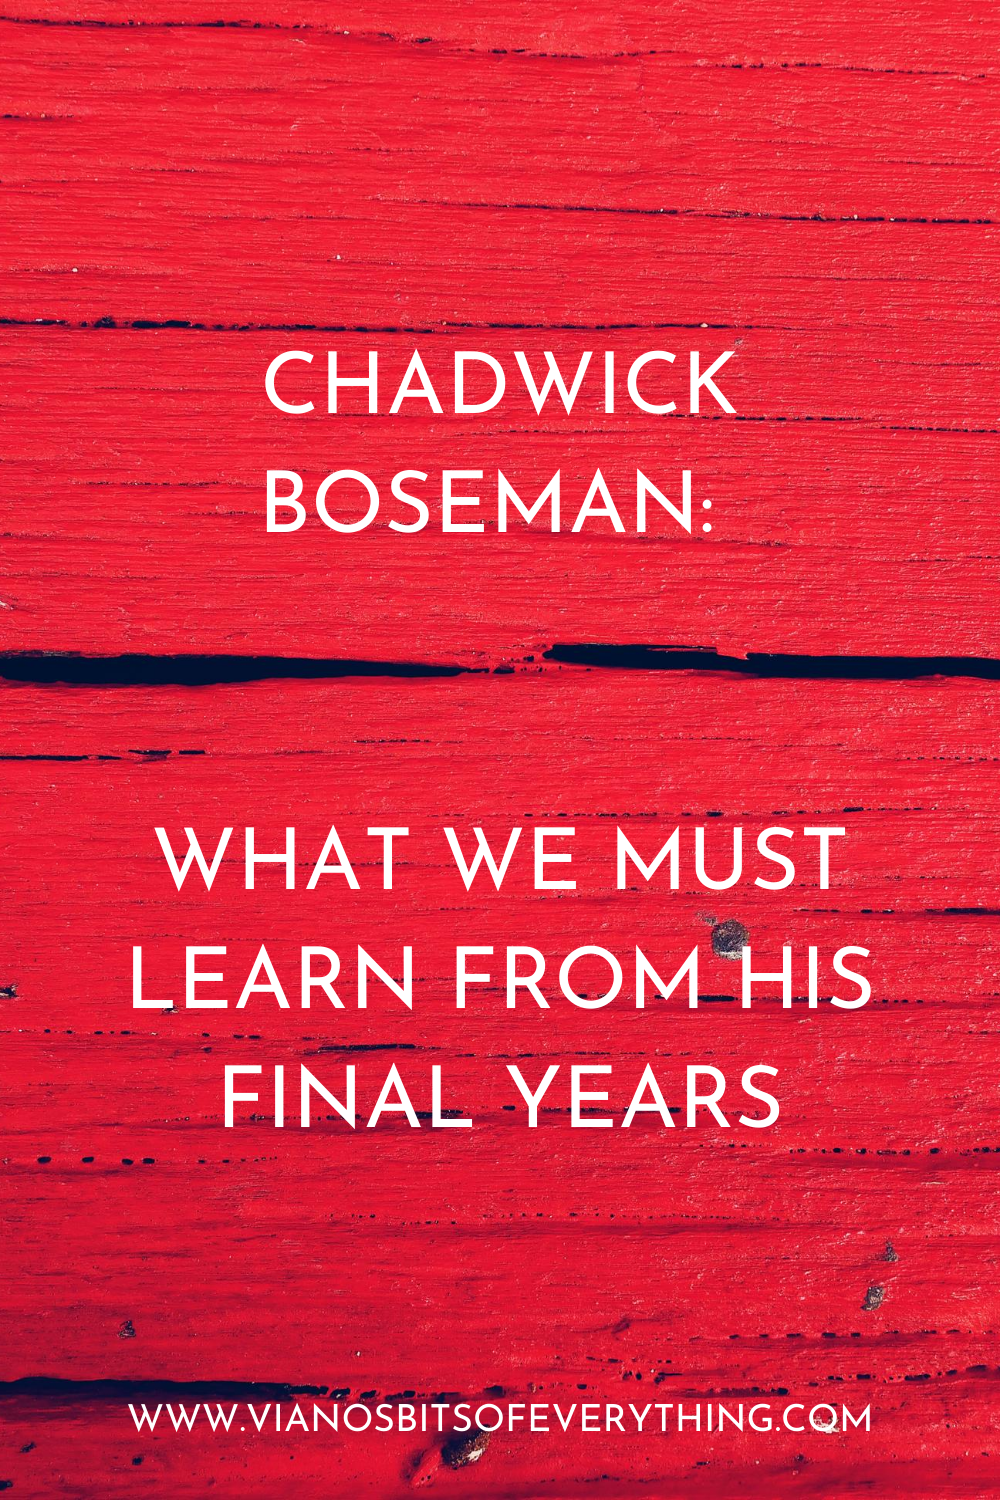 Chadwick Boseman: What We Must Learn From His Final Years